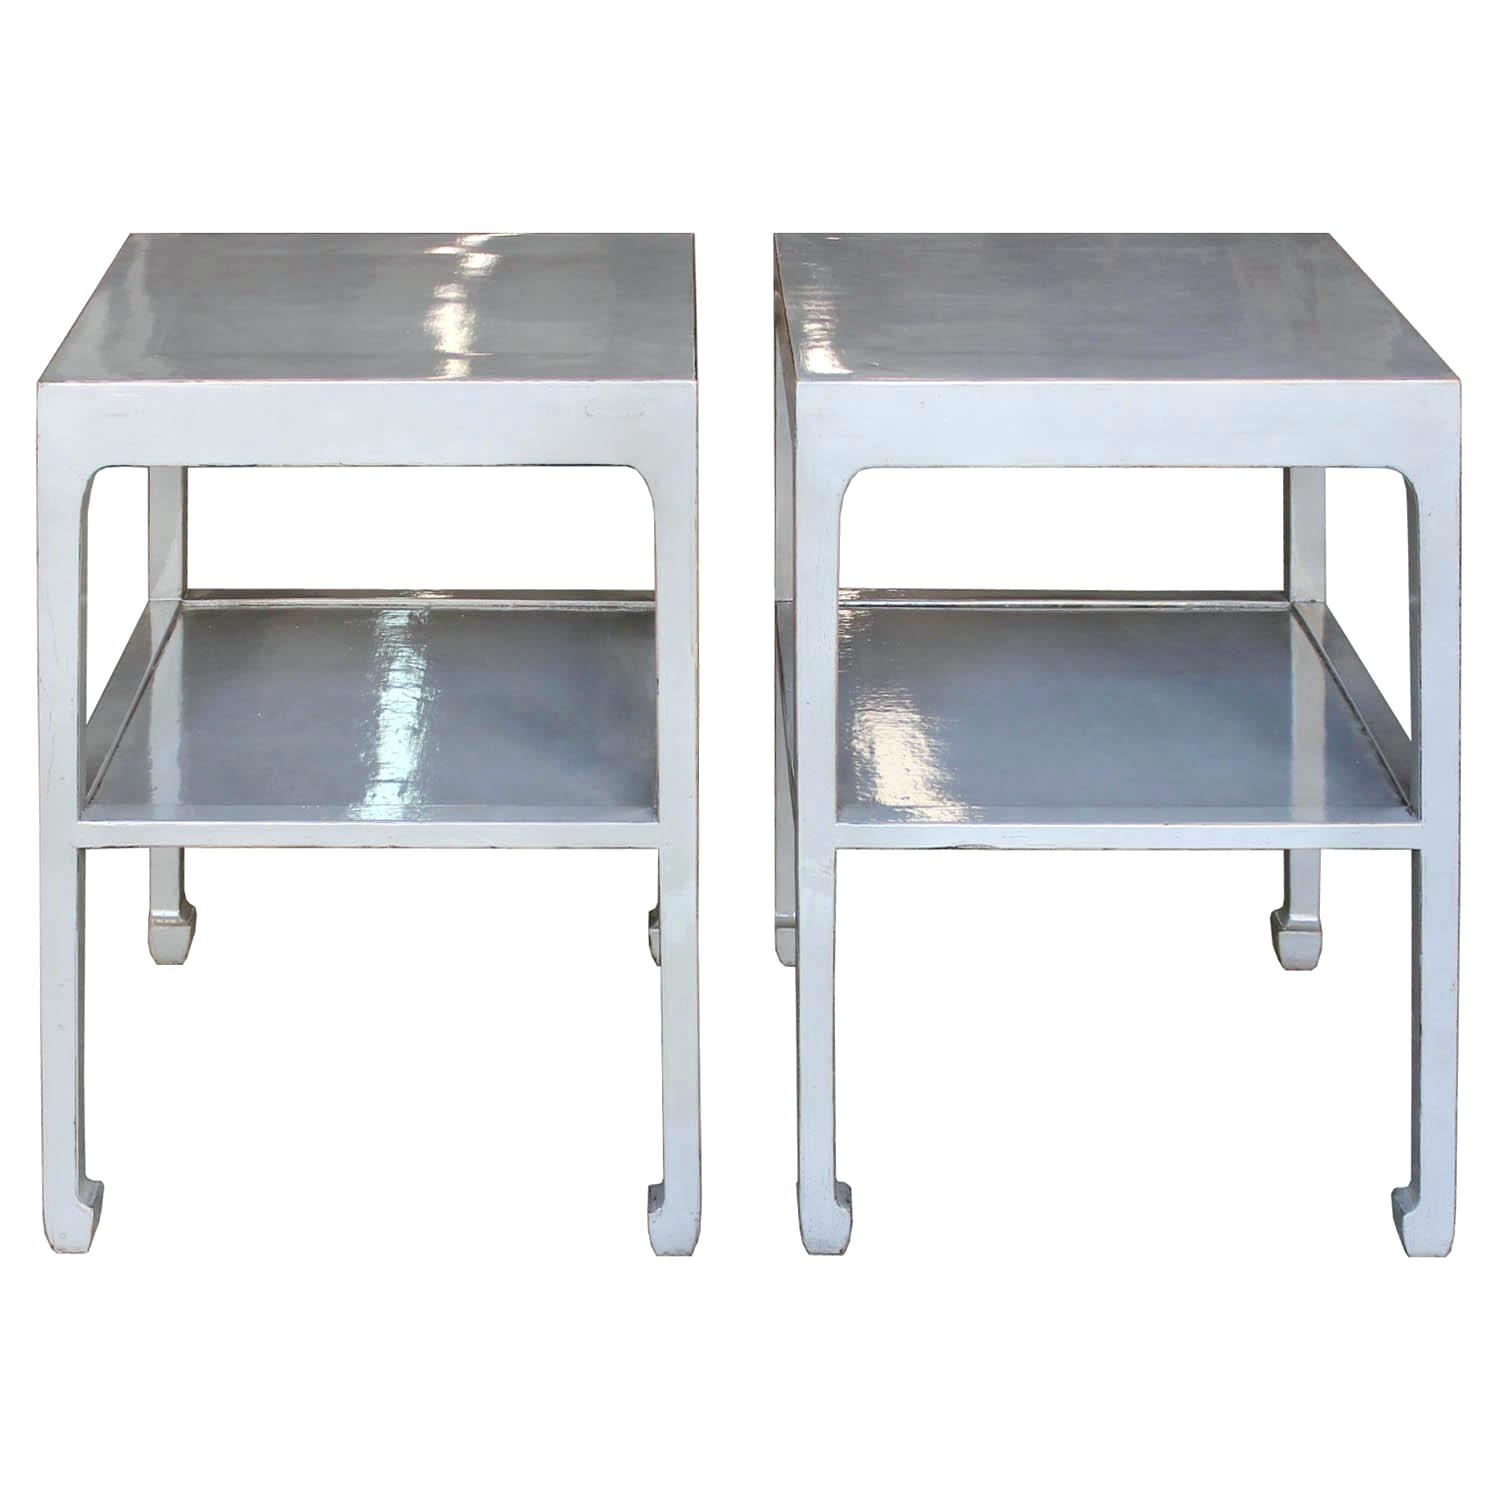 gray side table grey outdoor cybermotors two tier metal corner chests cabinets pretty storage boxes ikea breakfast bar and stools round white french coffee rose gold bedside big